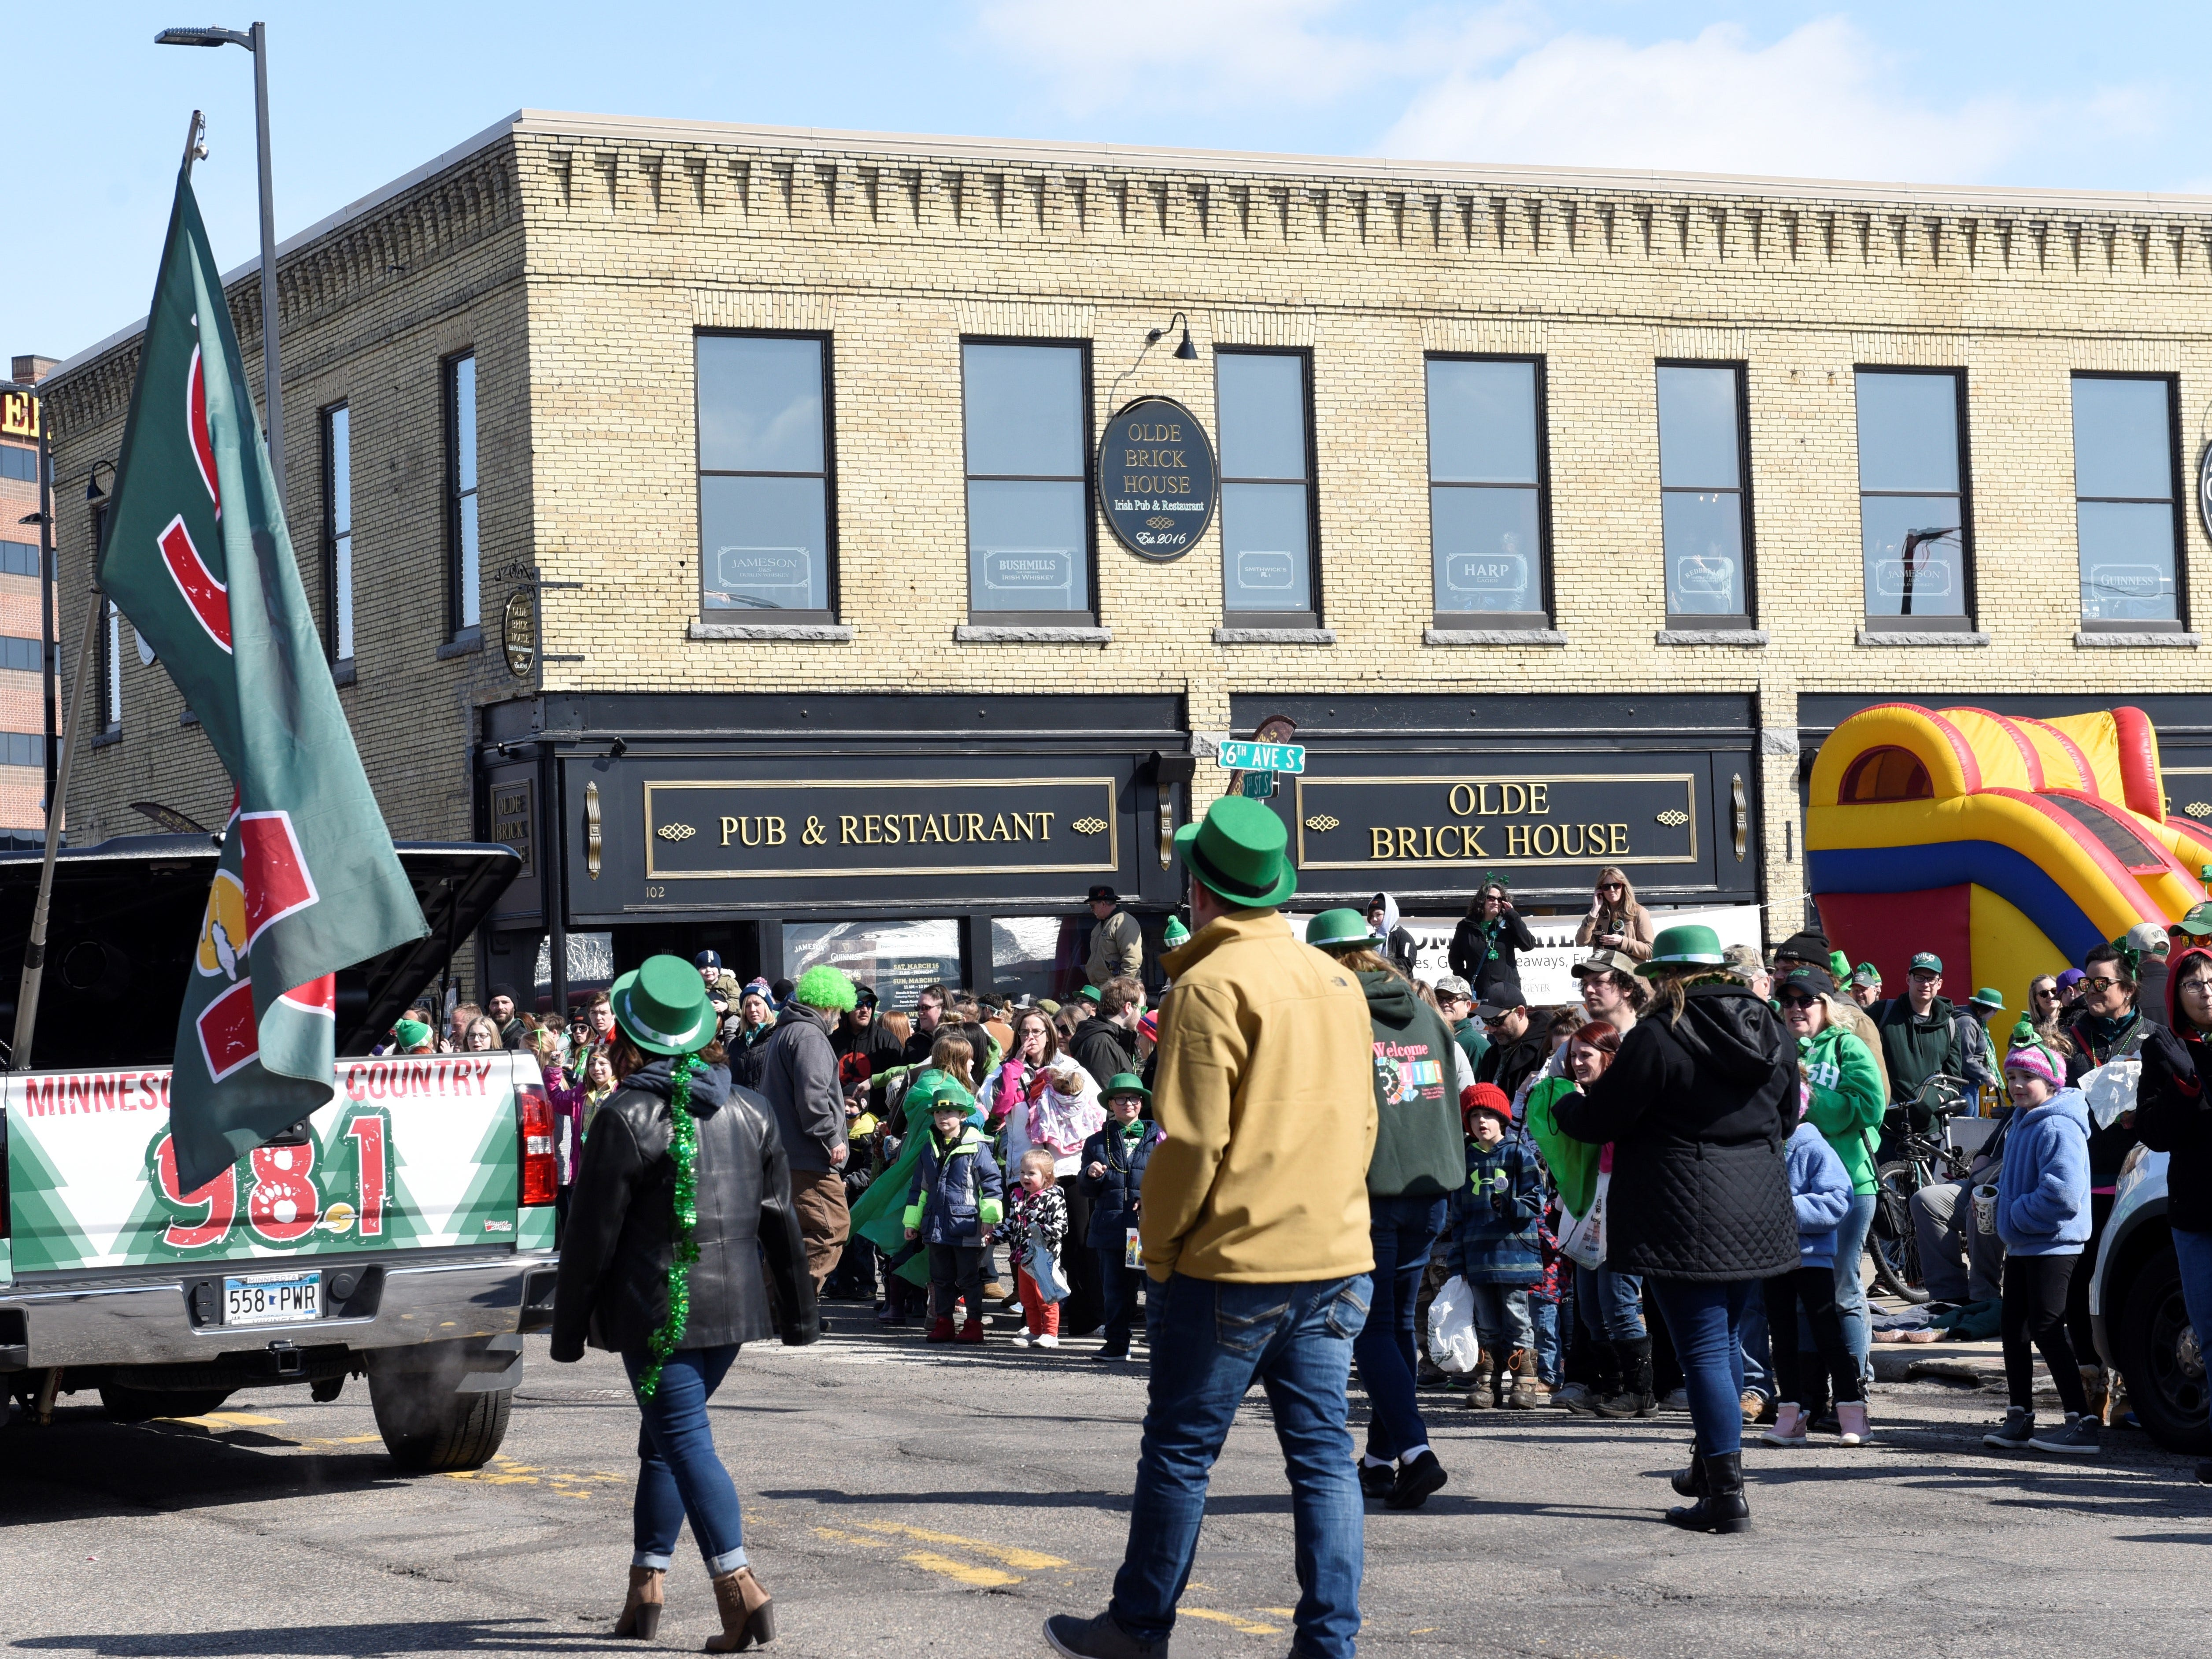 St. Cloud St. Patrick's Day parade put on by Olde Brick House, March 17, 2019.